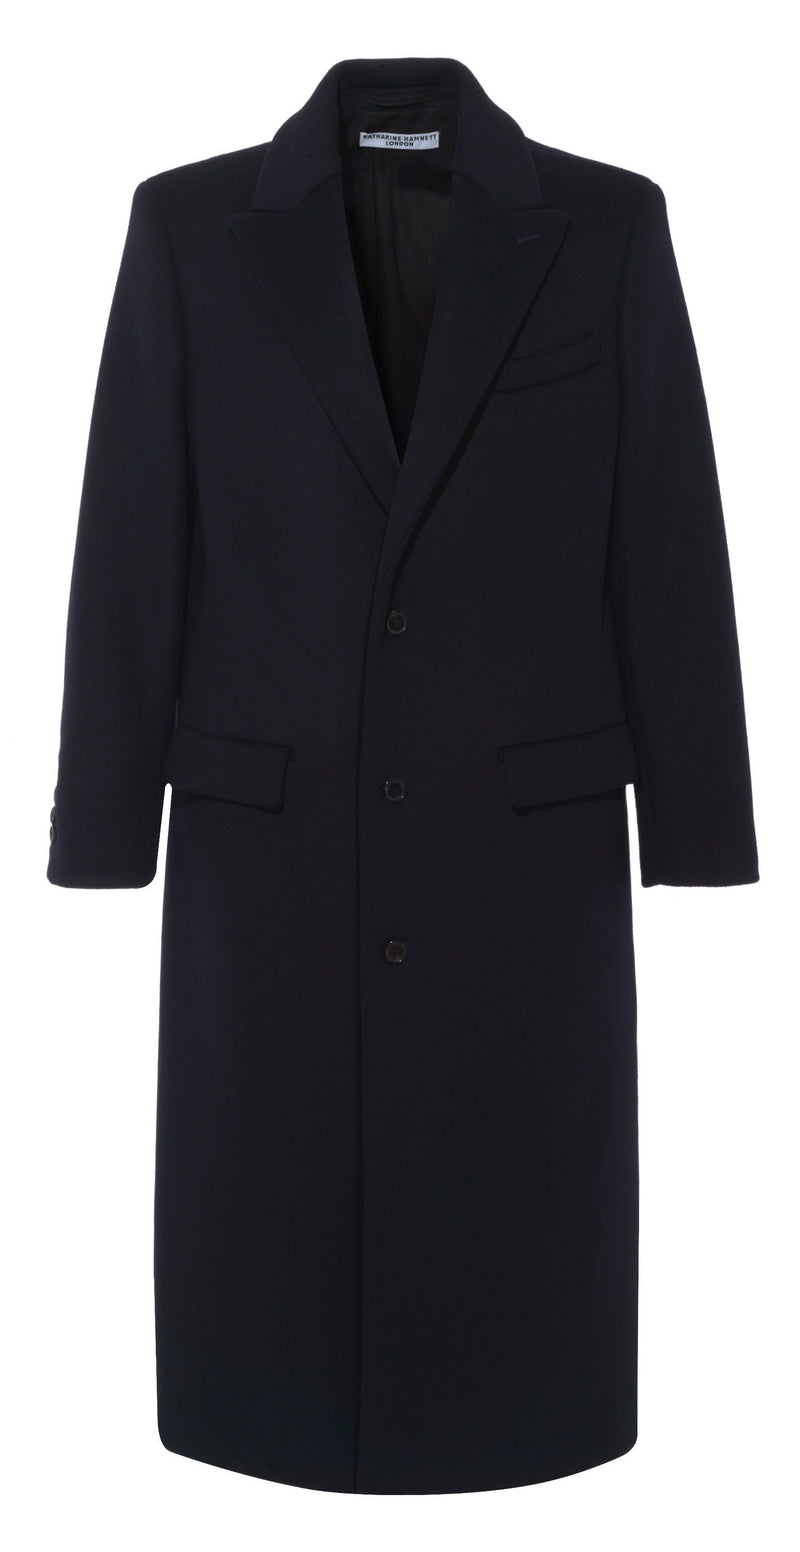 DARWALL Navy Recycled Wool Coat Coat Katharine Hamnett London - der ZEITGEIST